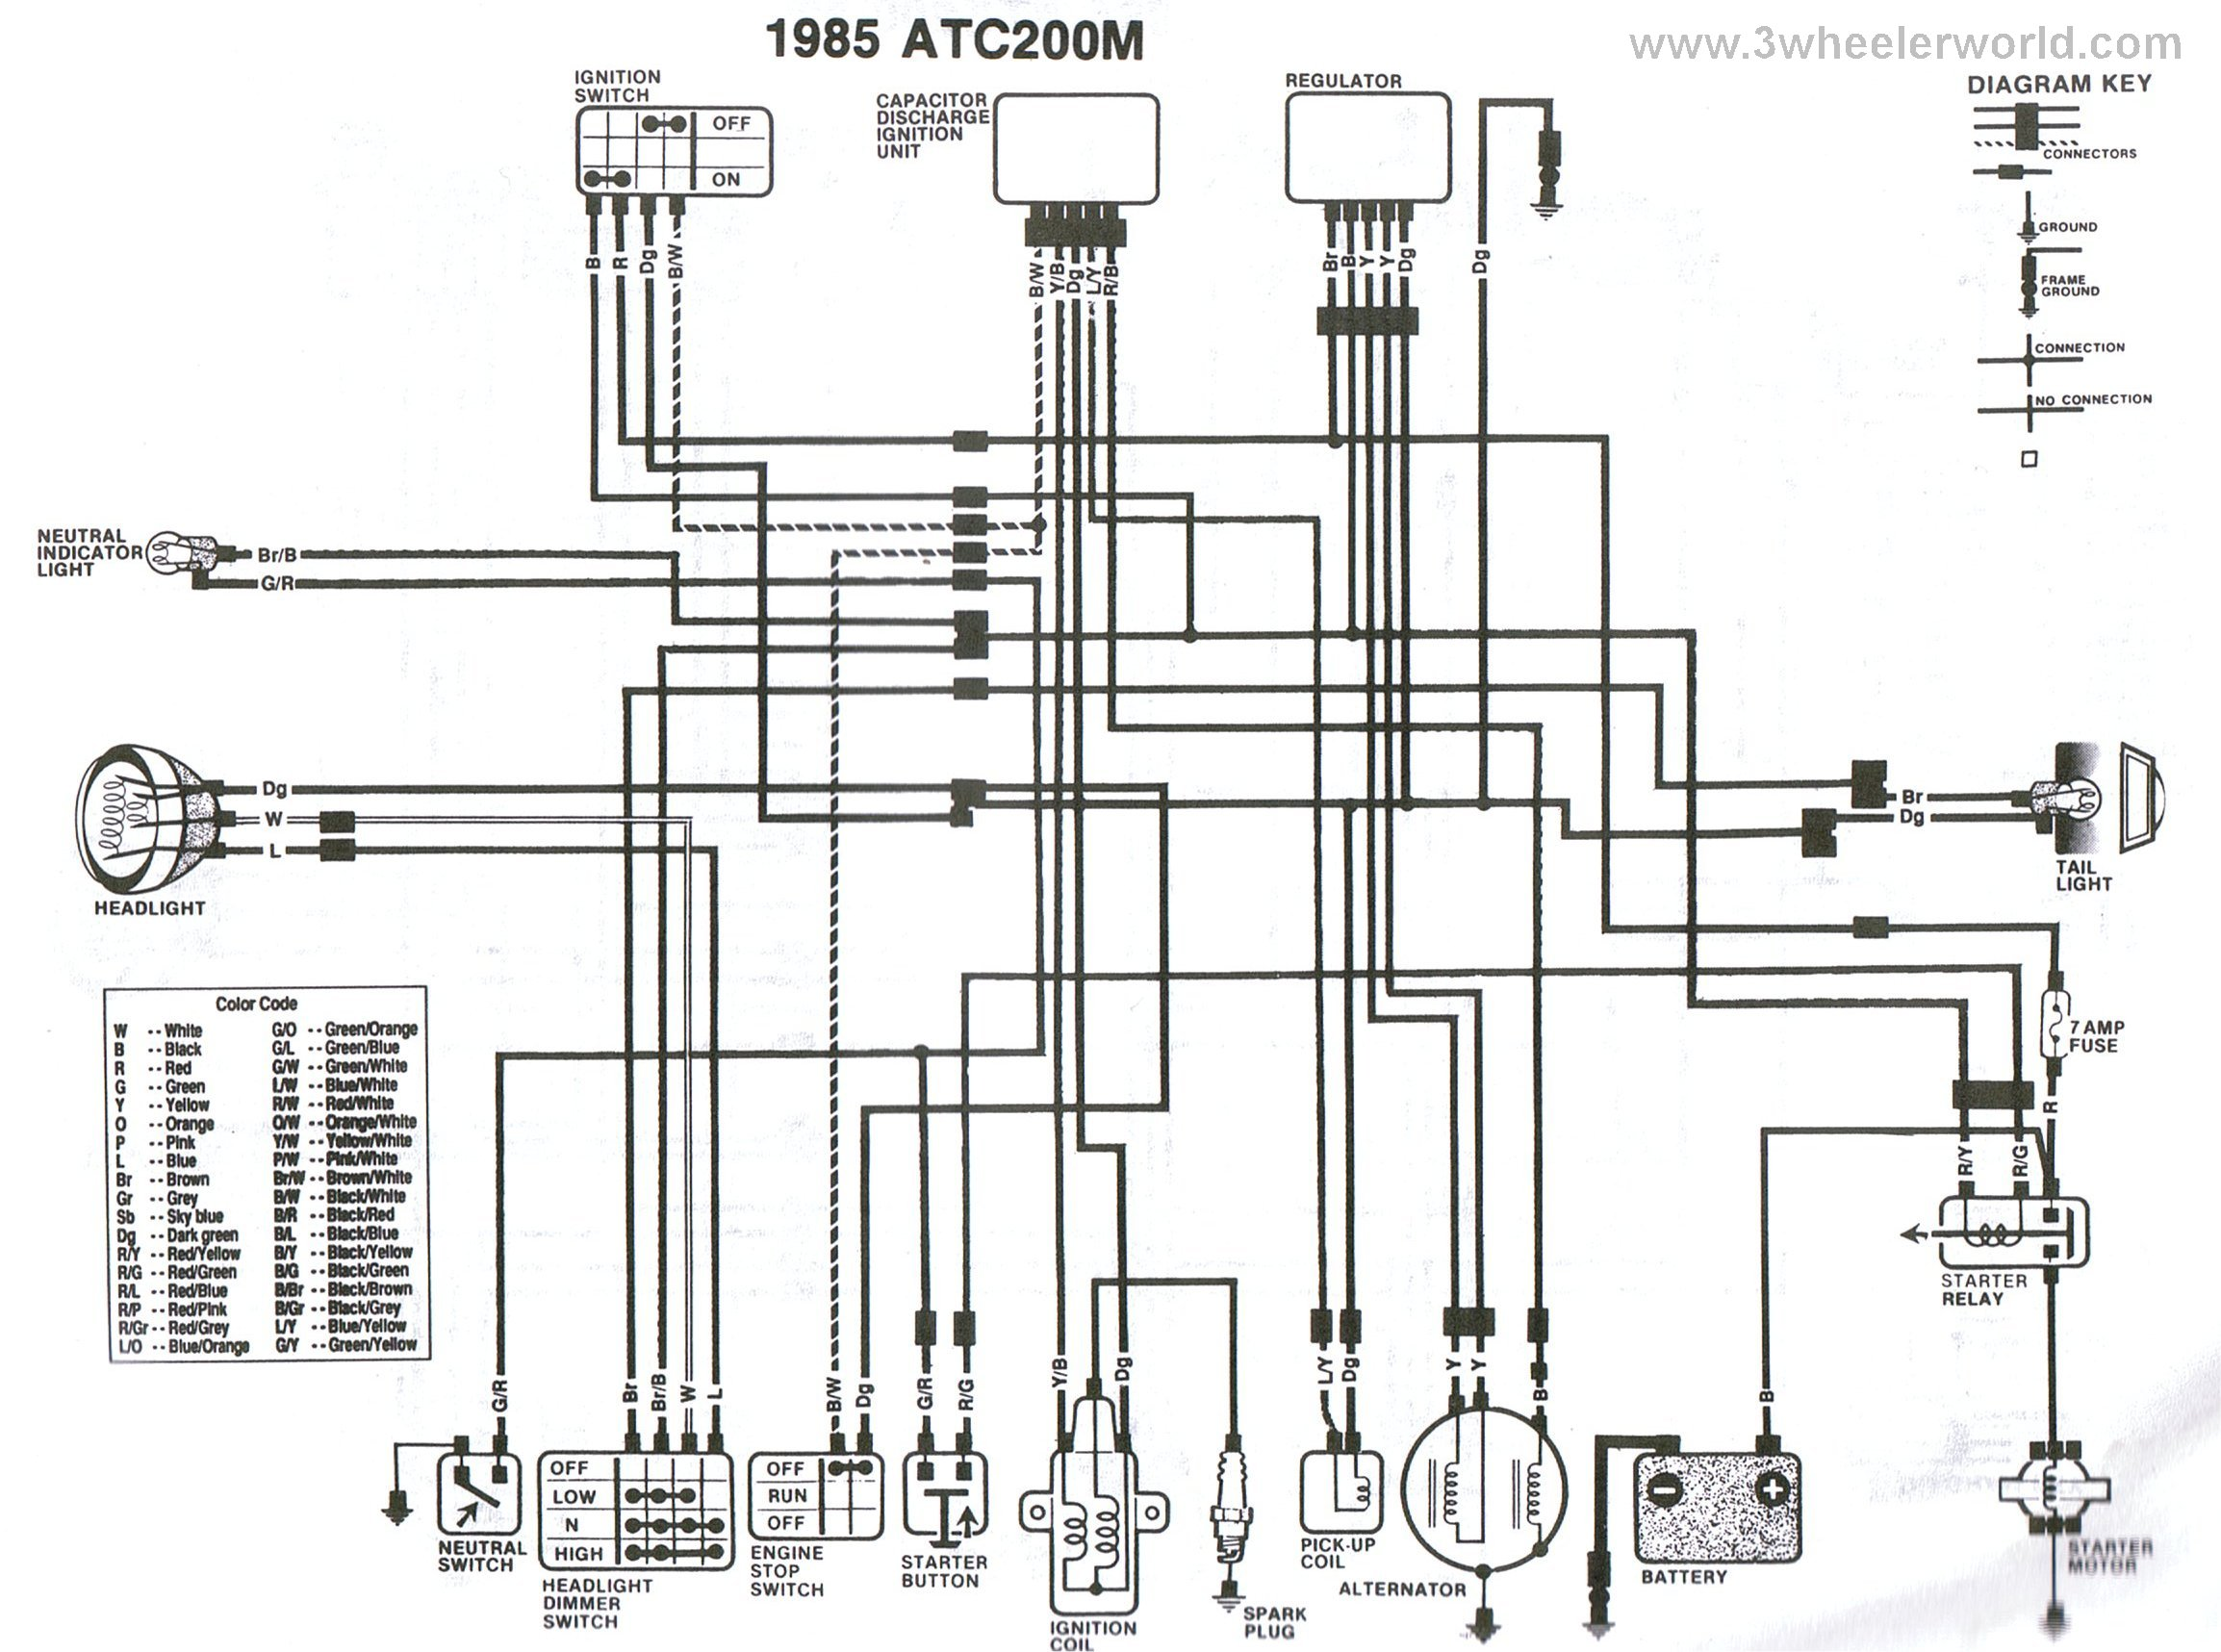 A Wiring Diagram For Honda Gl on 1977 honda ct90 wiring diagram, 1977 honda z50 wiring diagram, 1977 honda cb550 wiring diagram, 1977 honda cb550f wiring diagram, 1977 honda ct70 wiring diagram, 1977 honda cb750 wiring diagram, 1977 honda cb750k wiring diagram, 1977 honda goldwing wiring diagram,